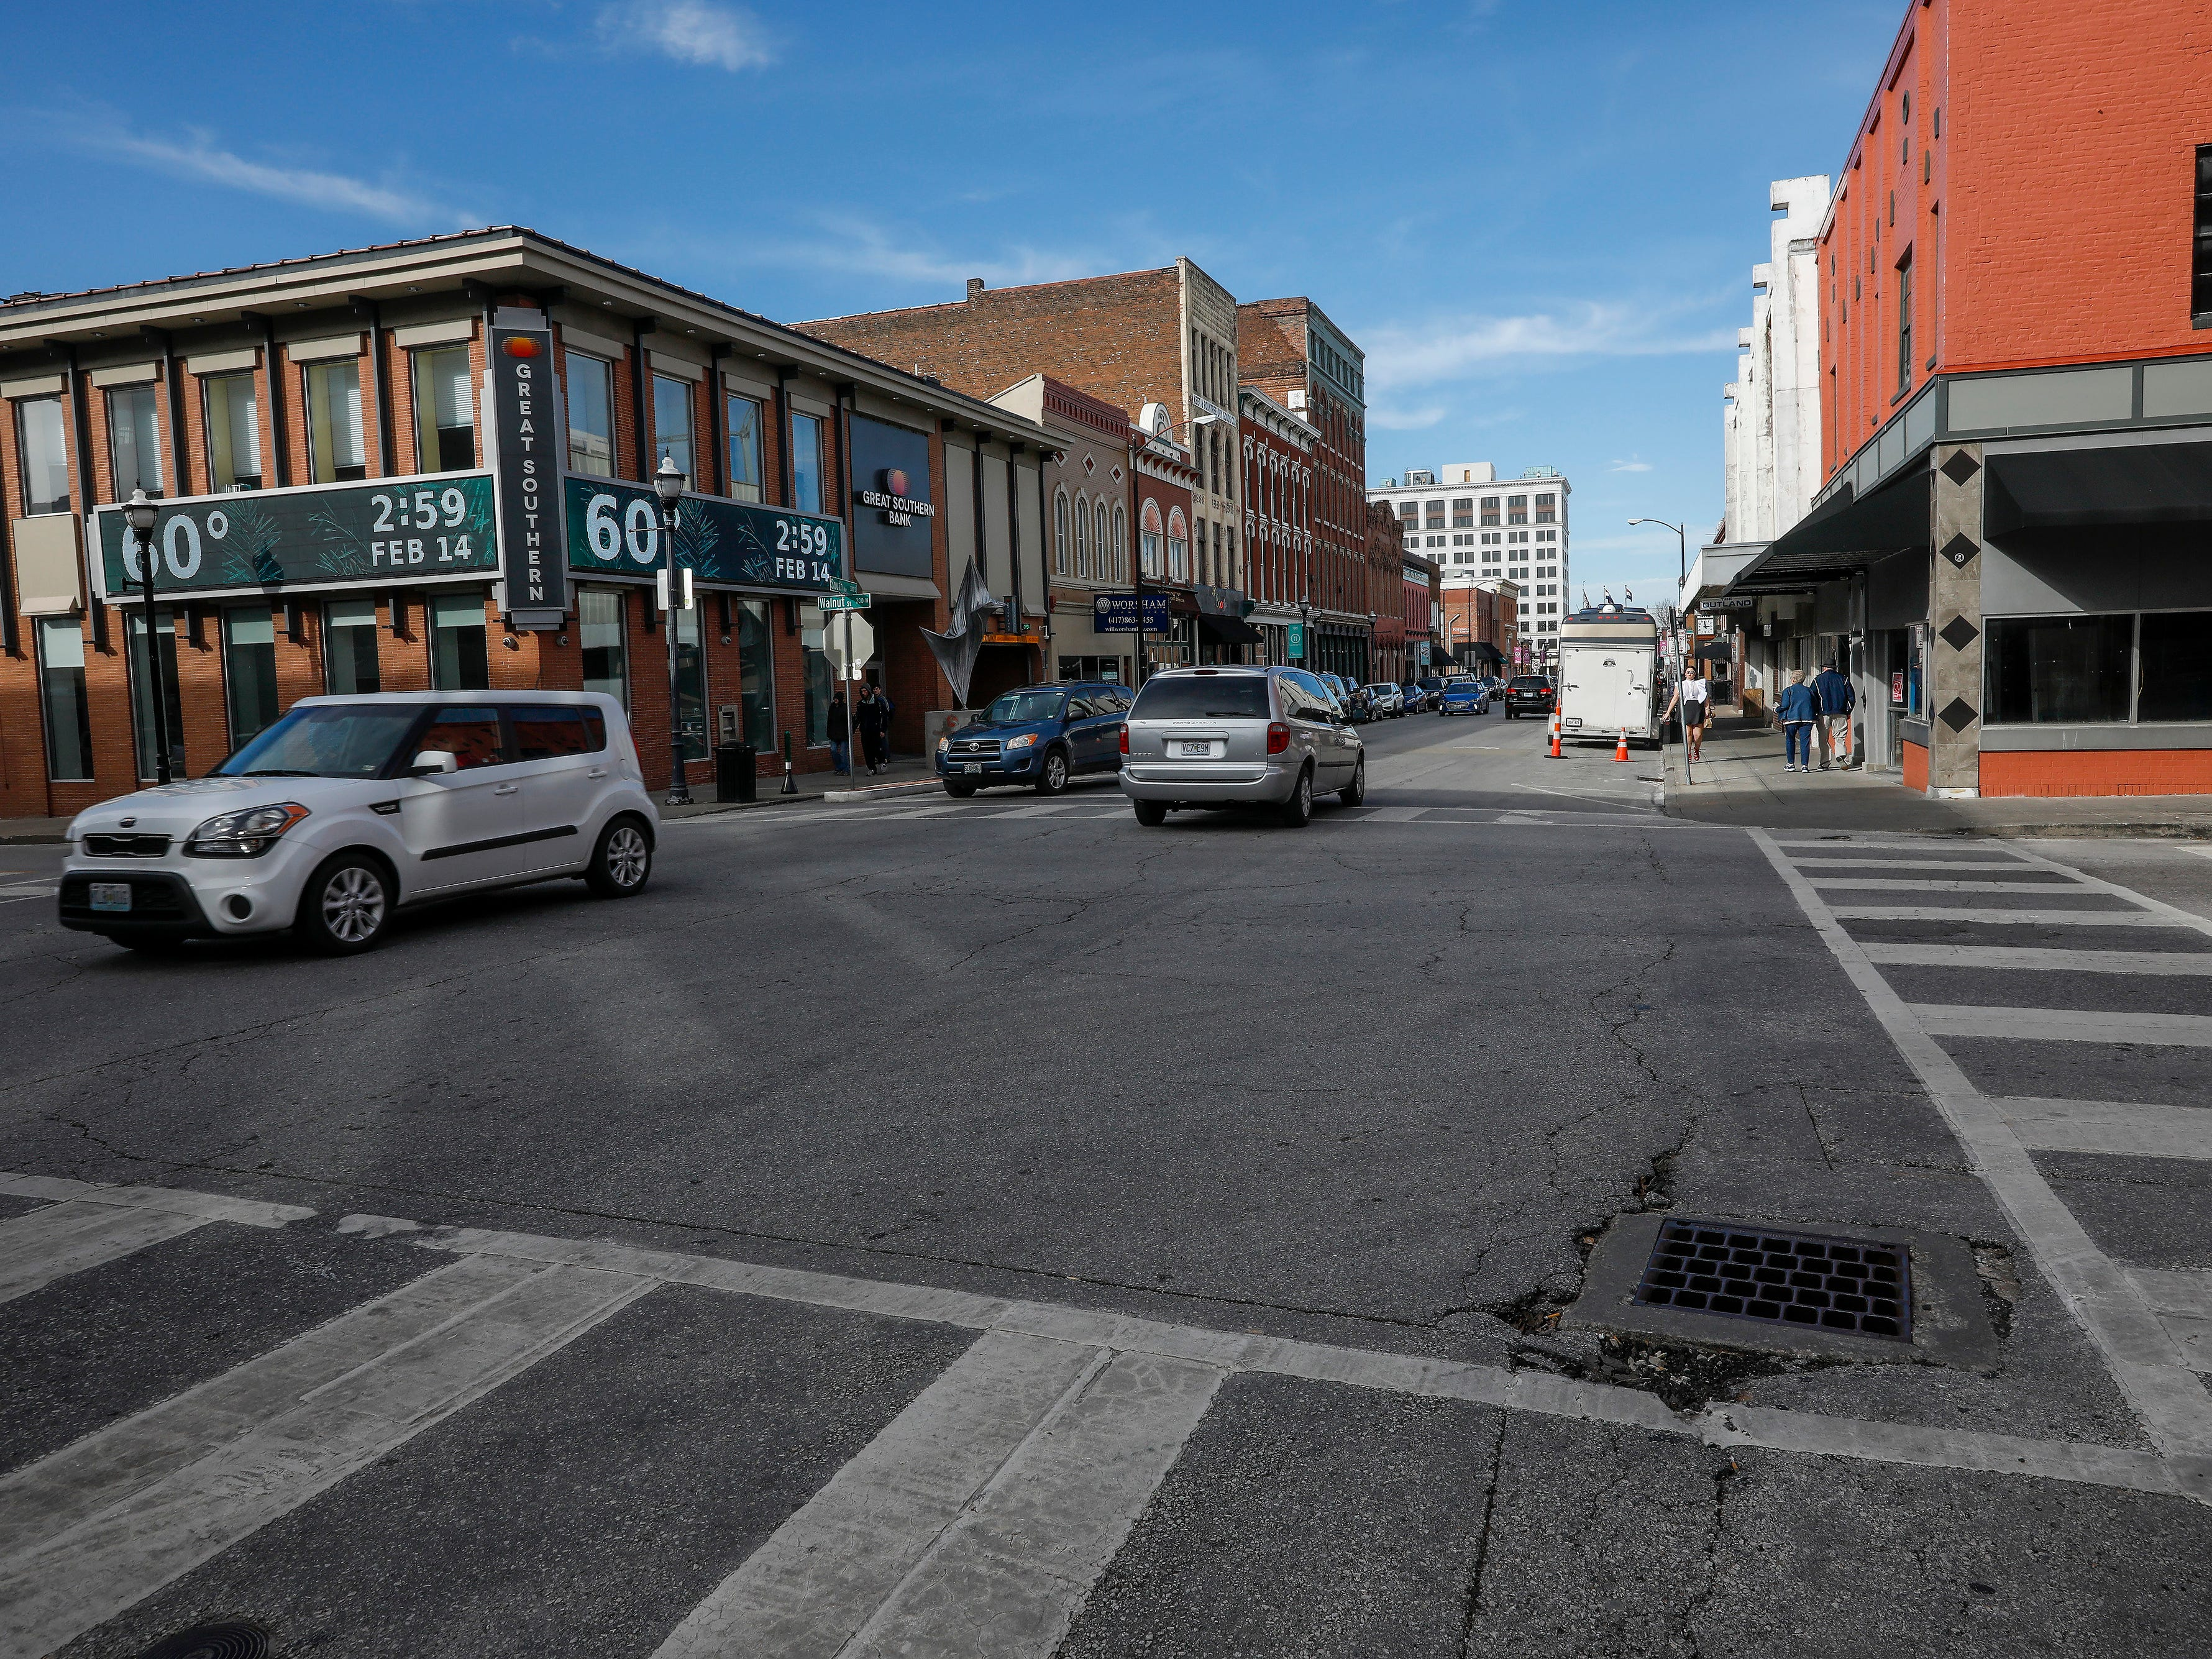 A look north down South Avenue downtown on Thursday, Feb. 14, 2019. Temperatures were in the low 60s on Thursday.